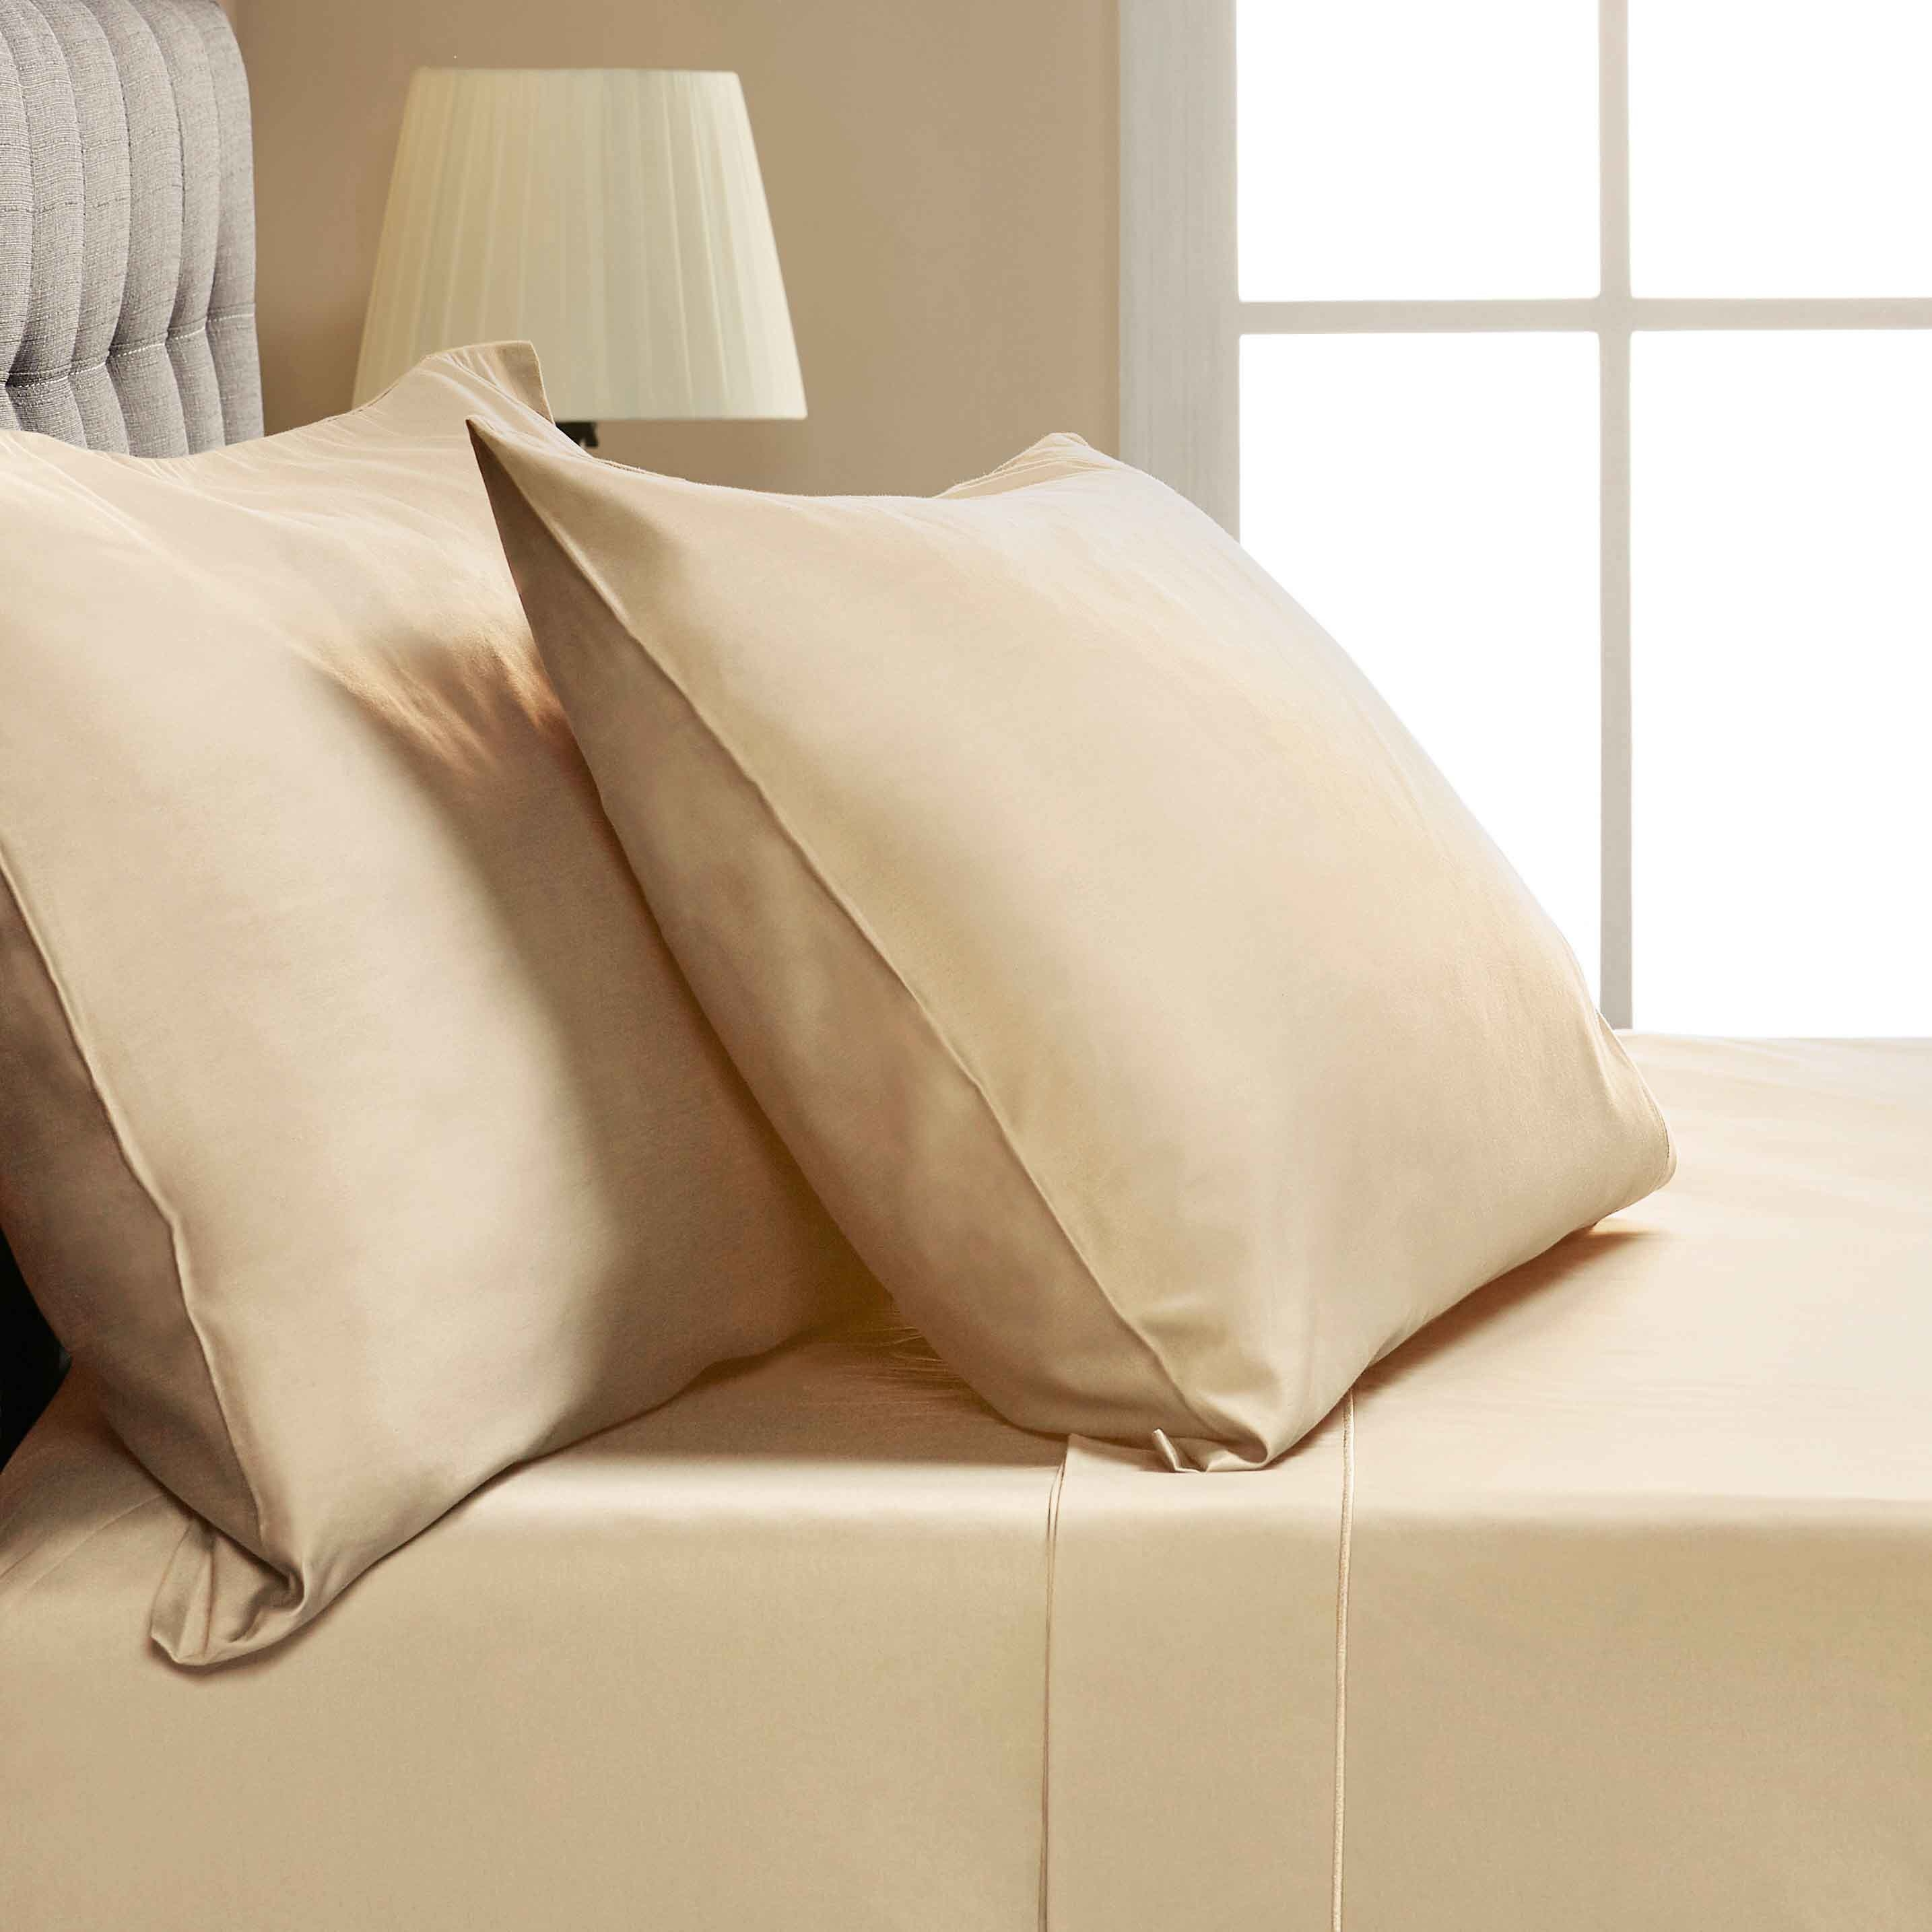 Egyptian cotton queen size sheets in Off-White